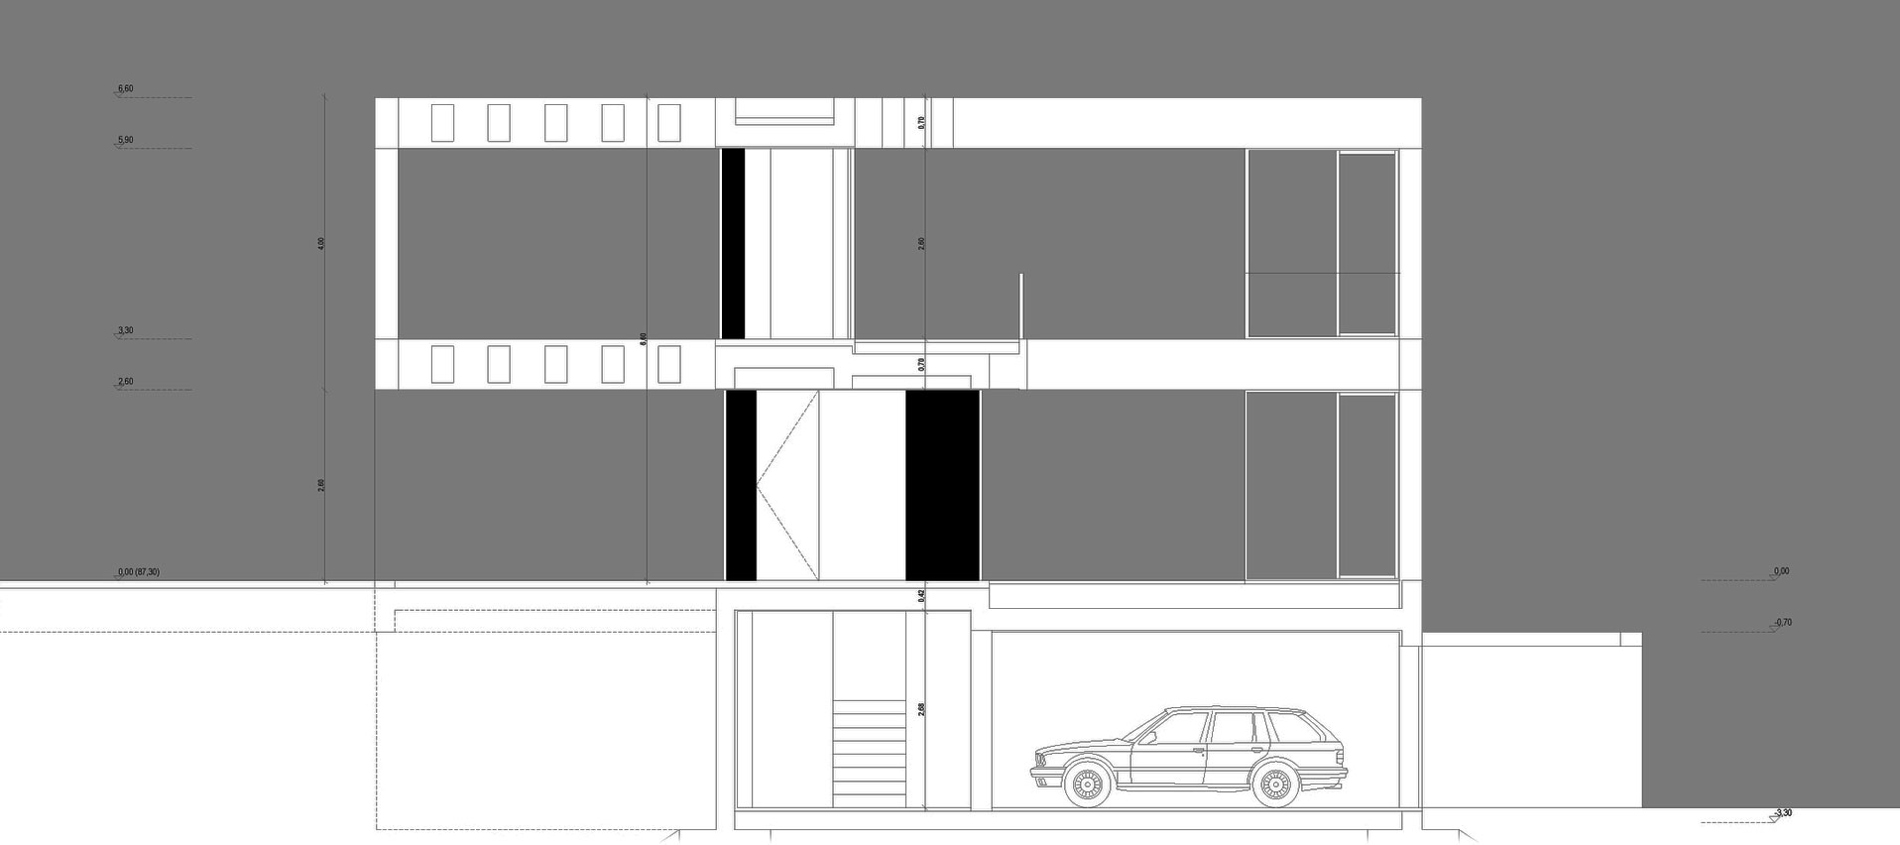 Elevation, C+P House in Lisbon, Portugal by Gonçalo das Neves Nunes